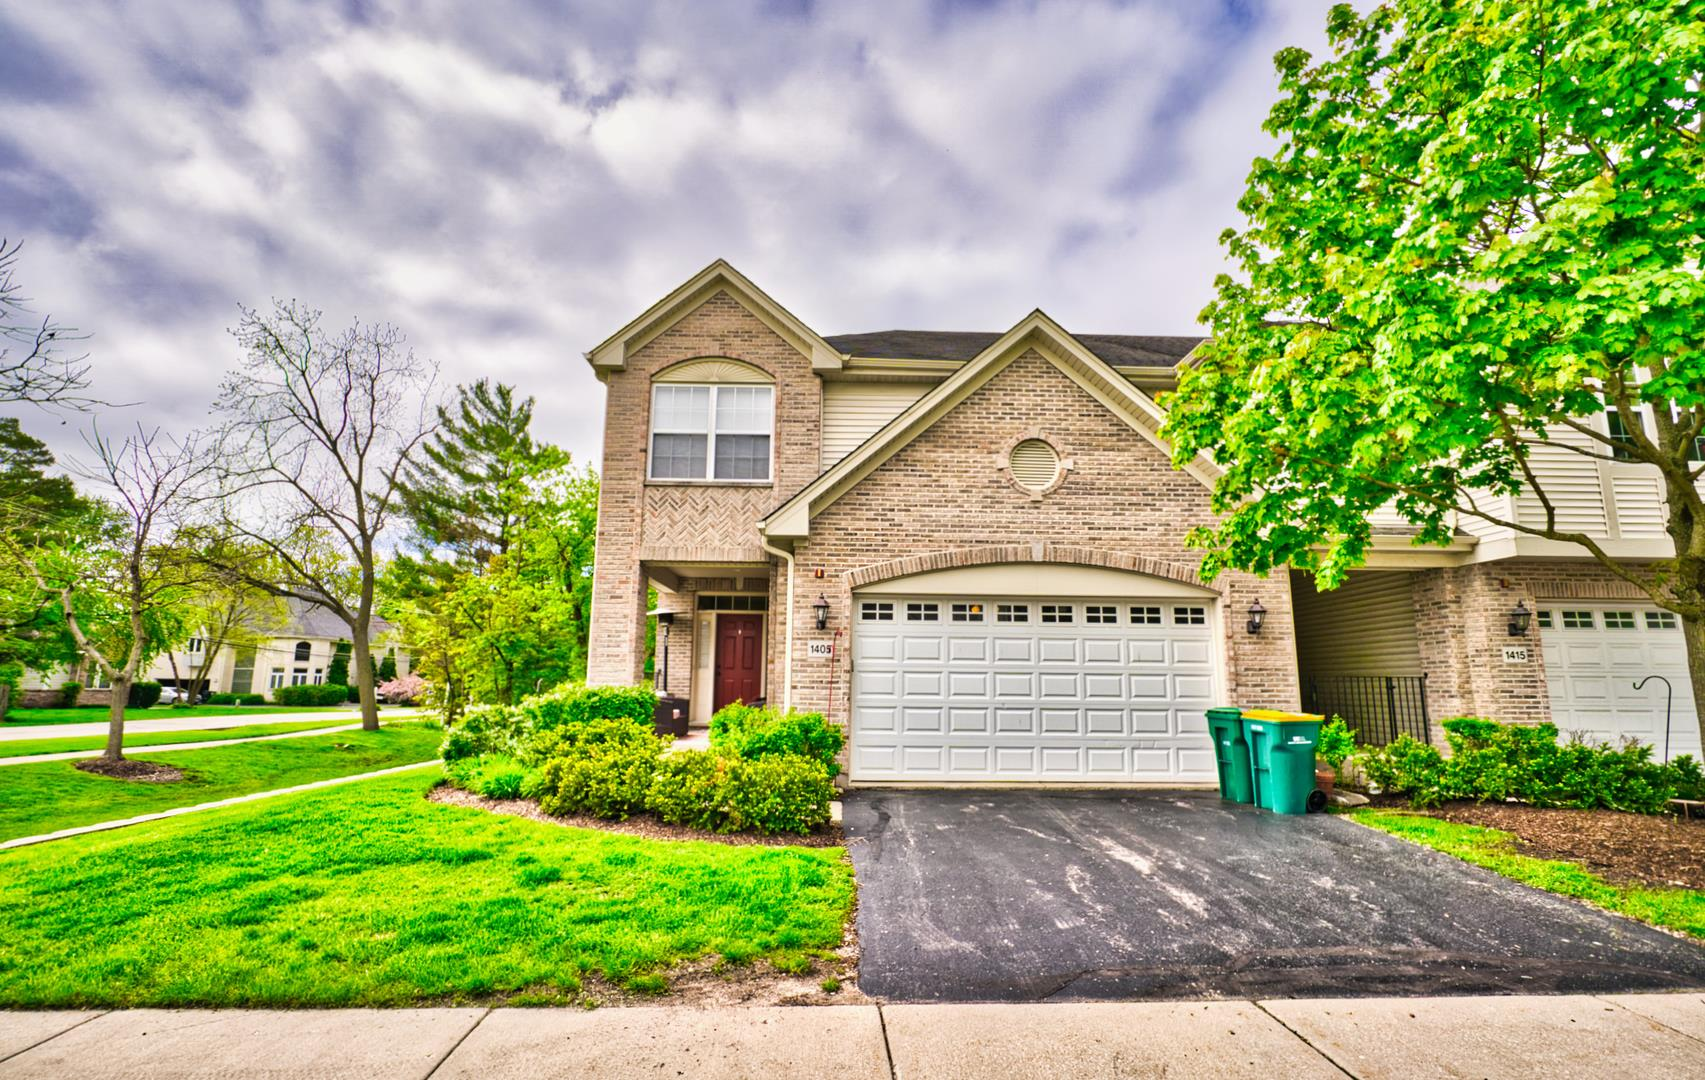 1405 Gingerwoods Court #1405, Wheeling, IL 60090 - #: 10725121